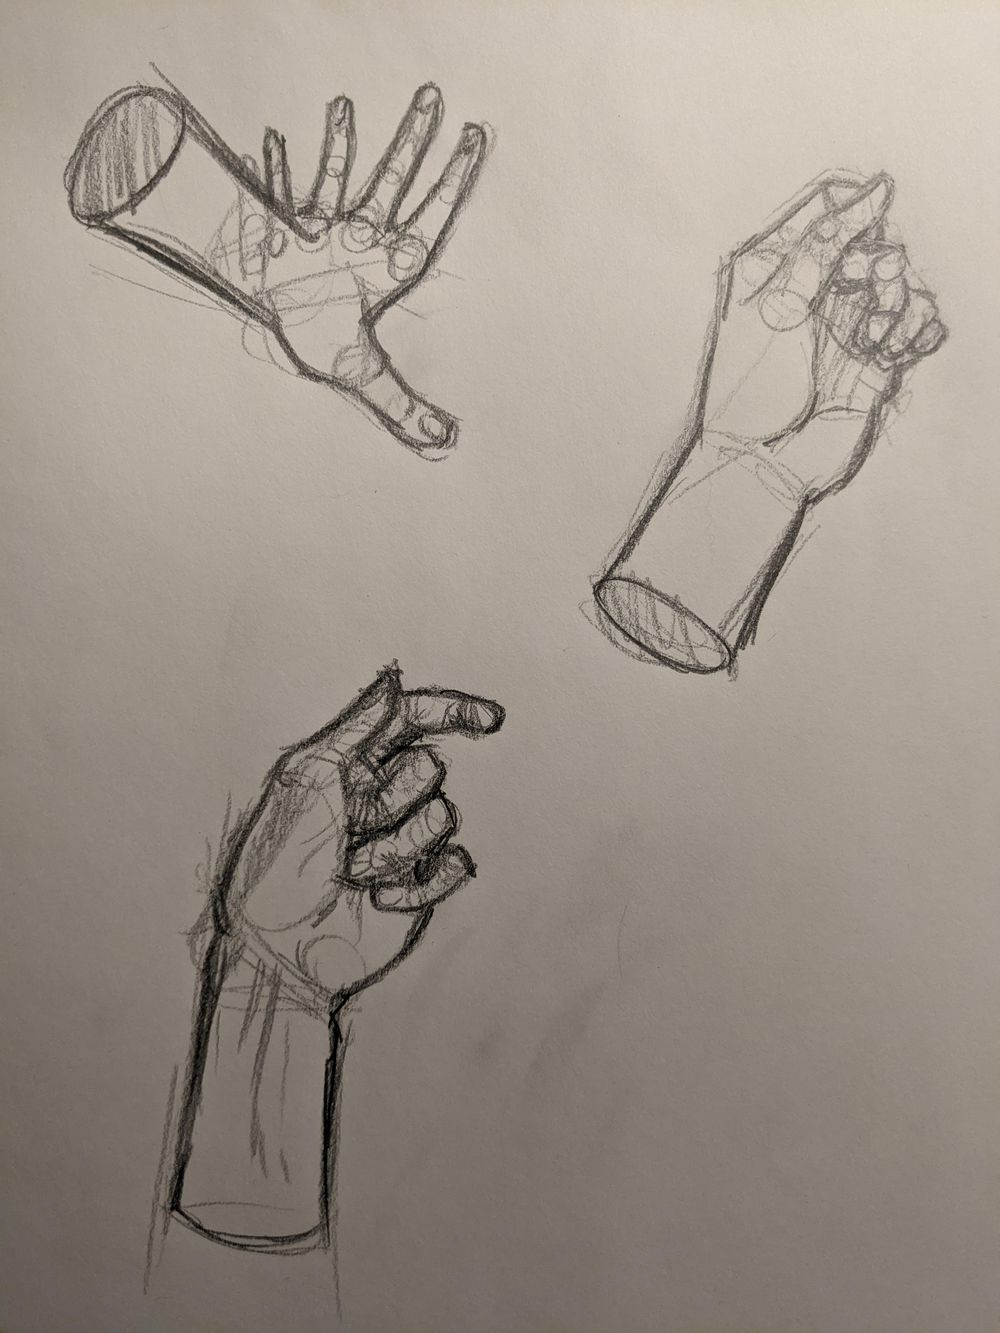 Drawing Hands - image 1 - student project